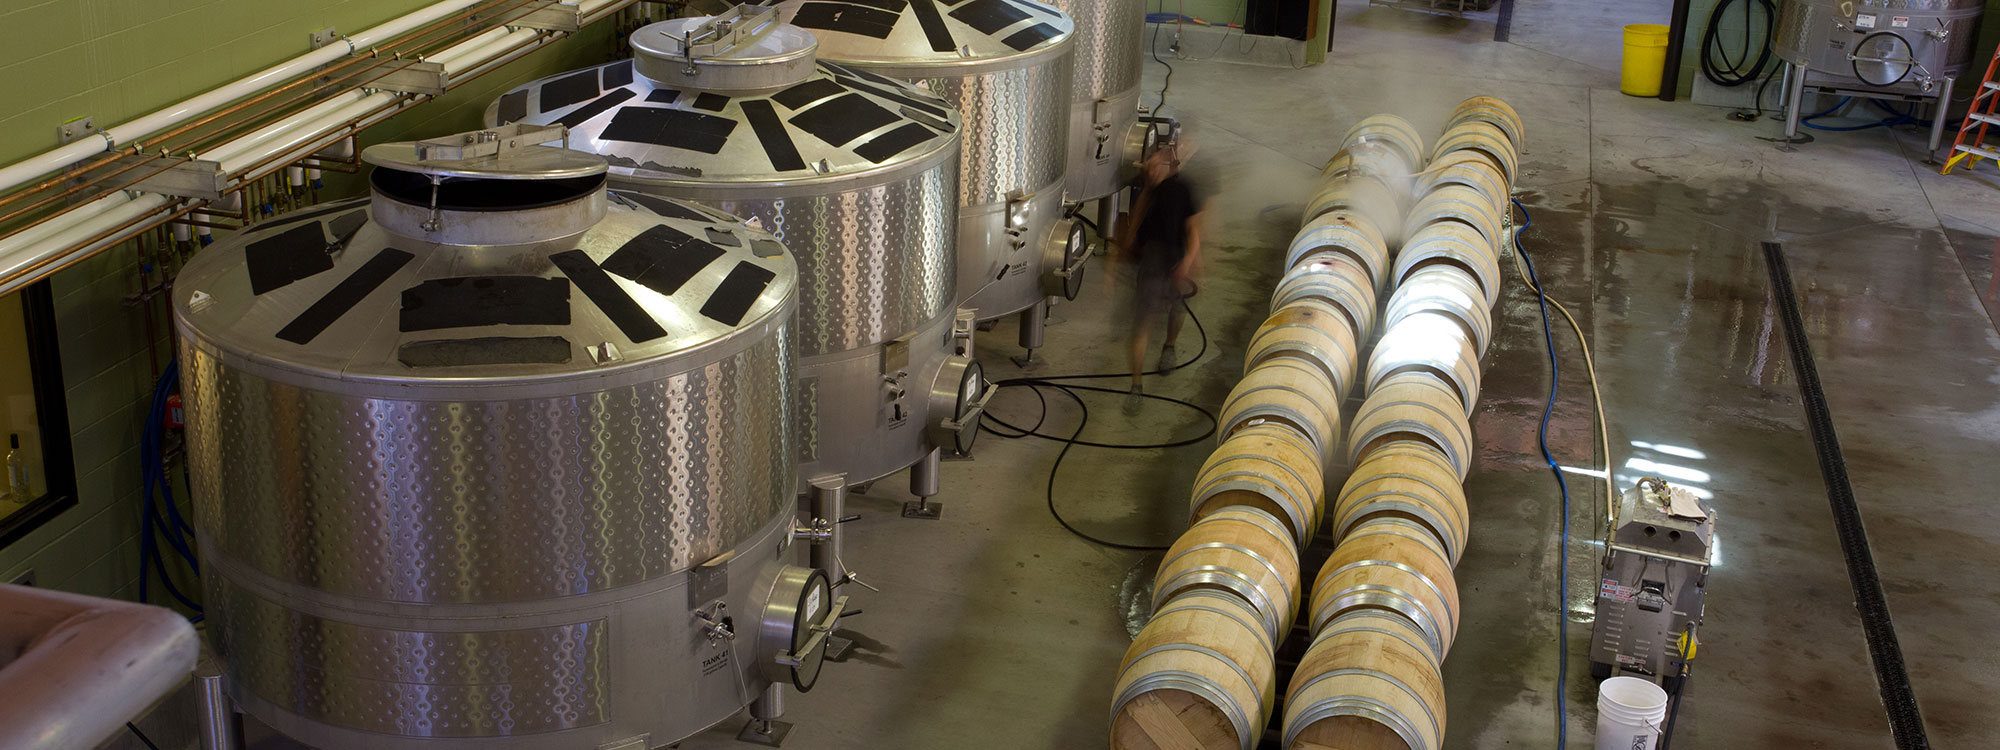 Full Service Winery Construction Company - Paso Robles, CA - JW Design & Construction